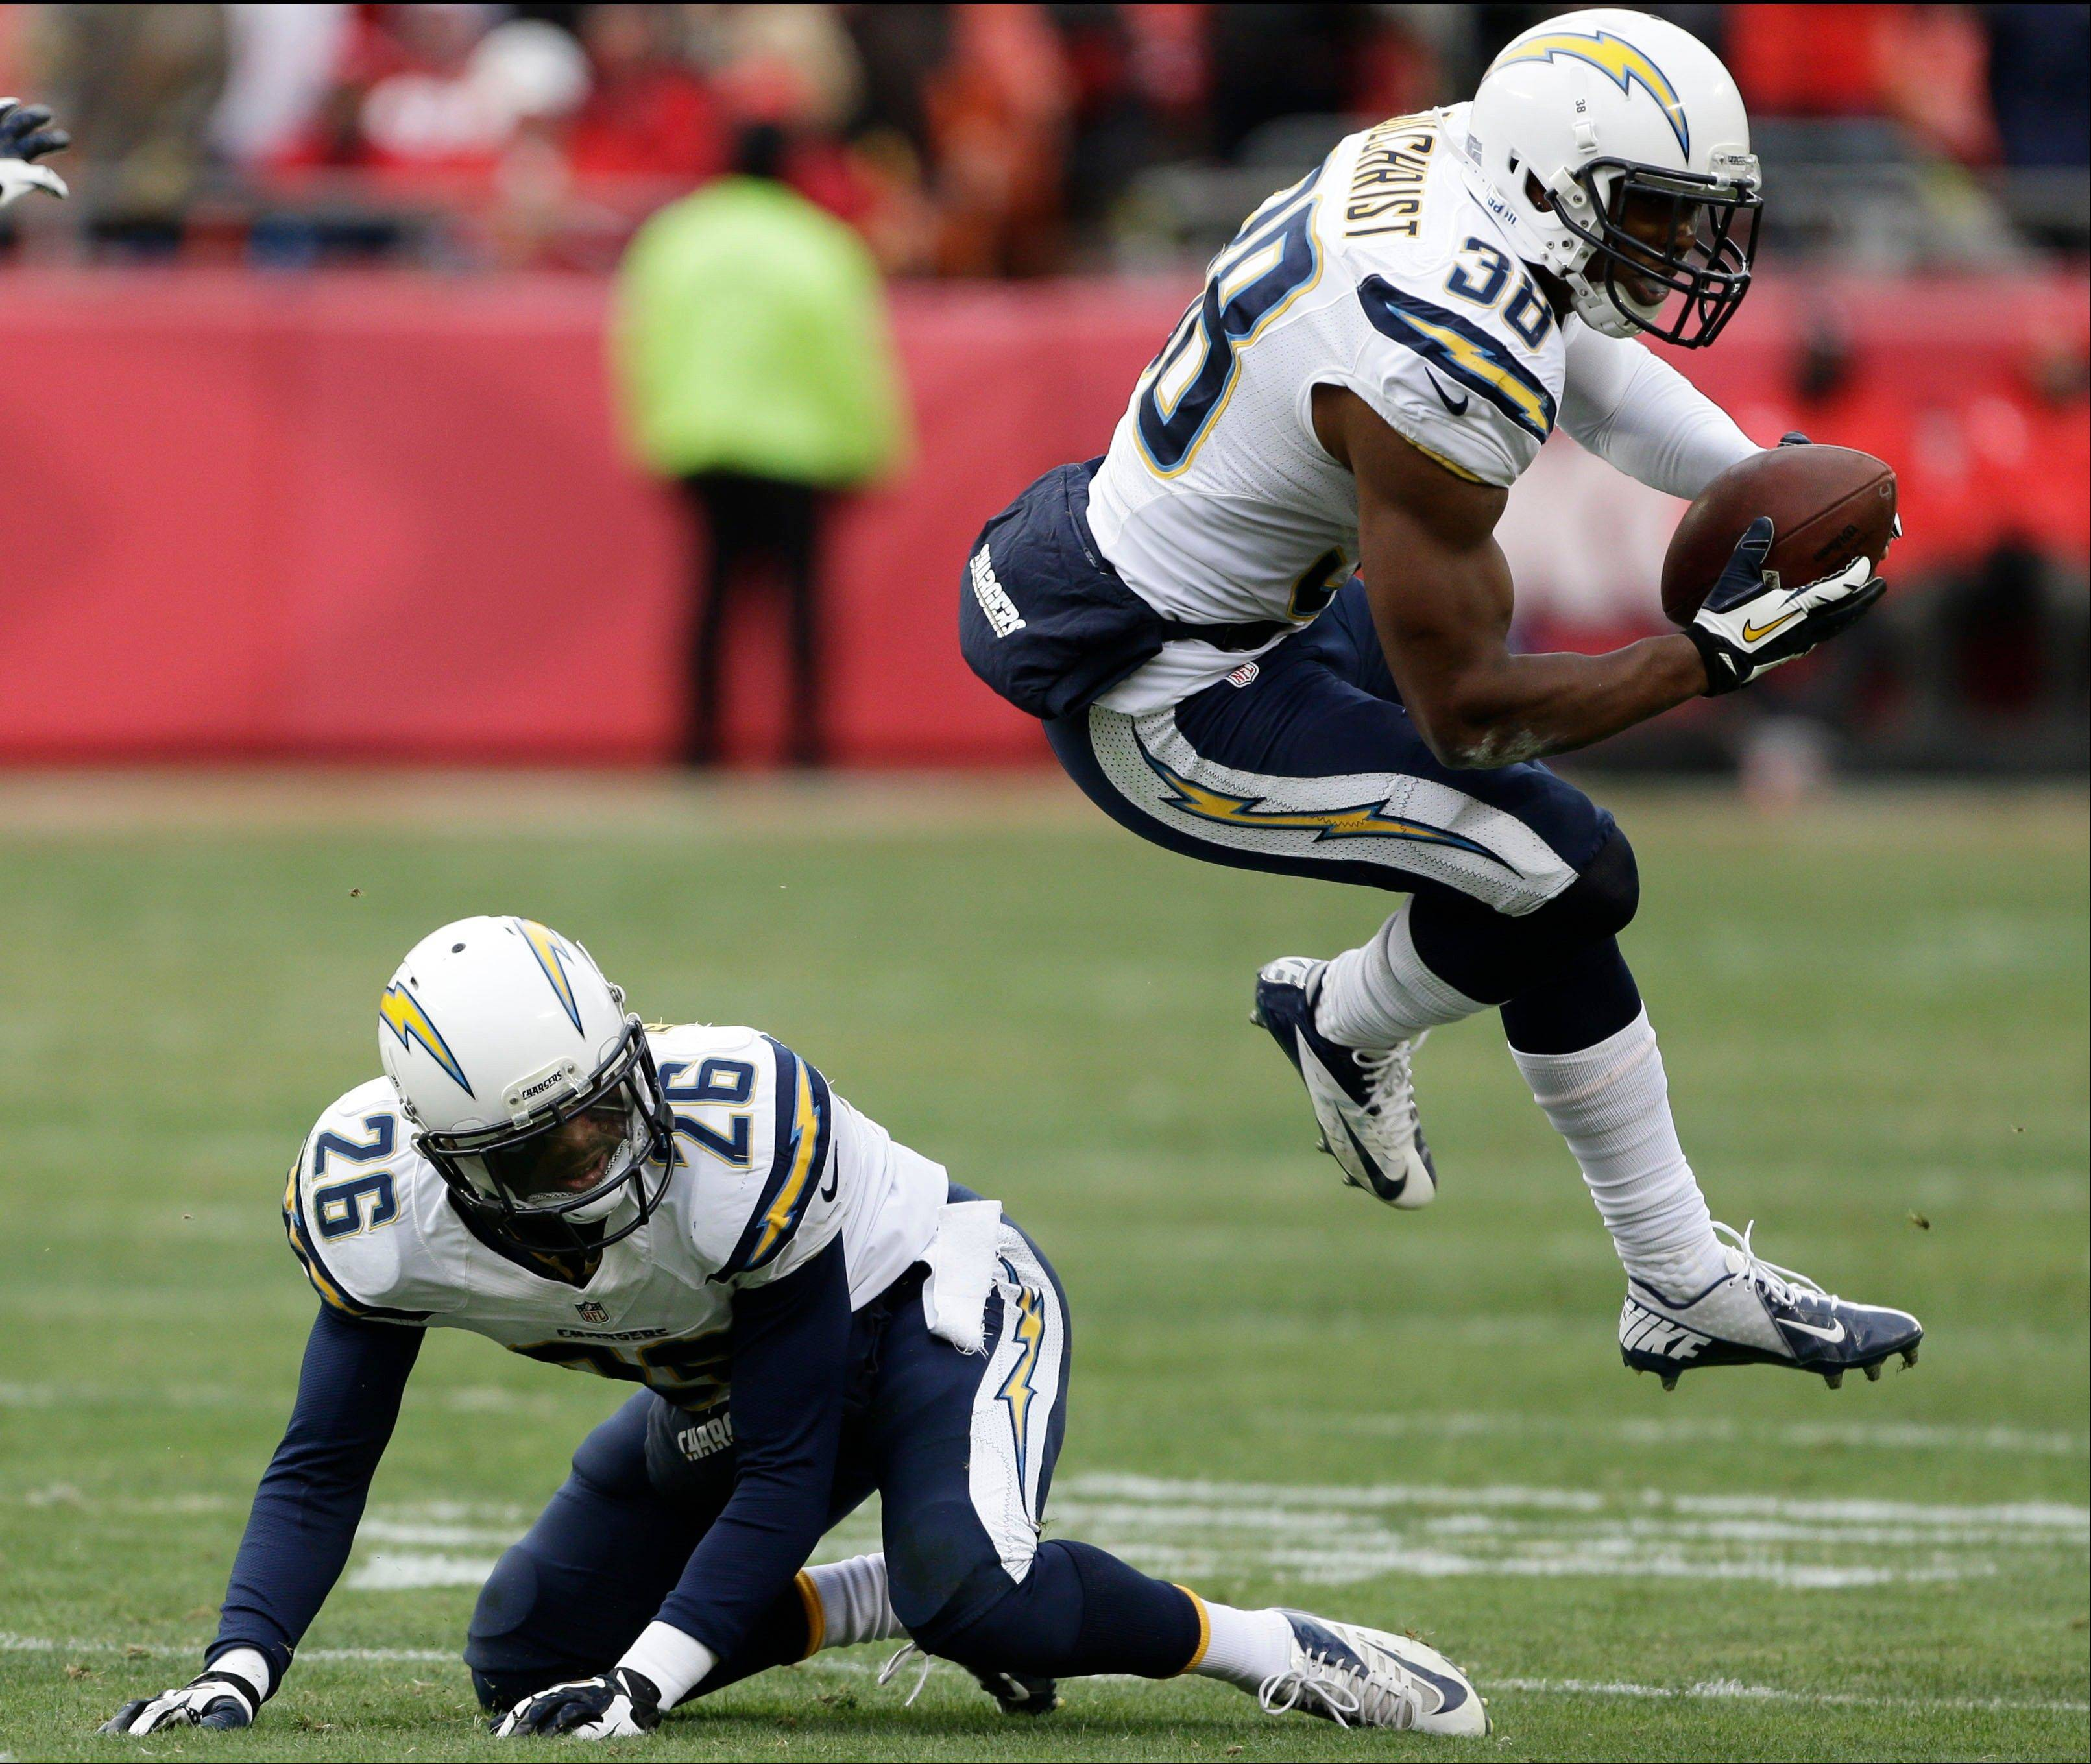 San Diego Chargers strong safety Marcus Gilchrist (38) jumps over cornerback Johnny Patrick (26) after making an interception during the second half of an NFL football game against the Kansas City Chiefs in Kansas City, Mo., Sunday, Nov. 24, 2013.